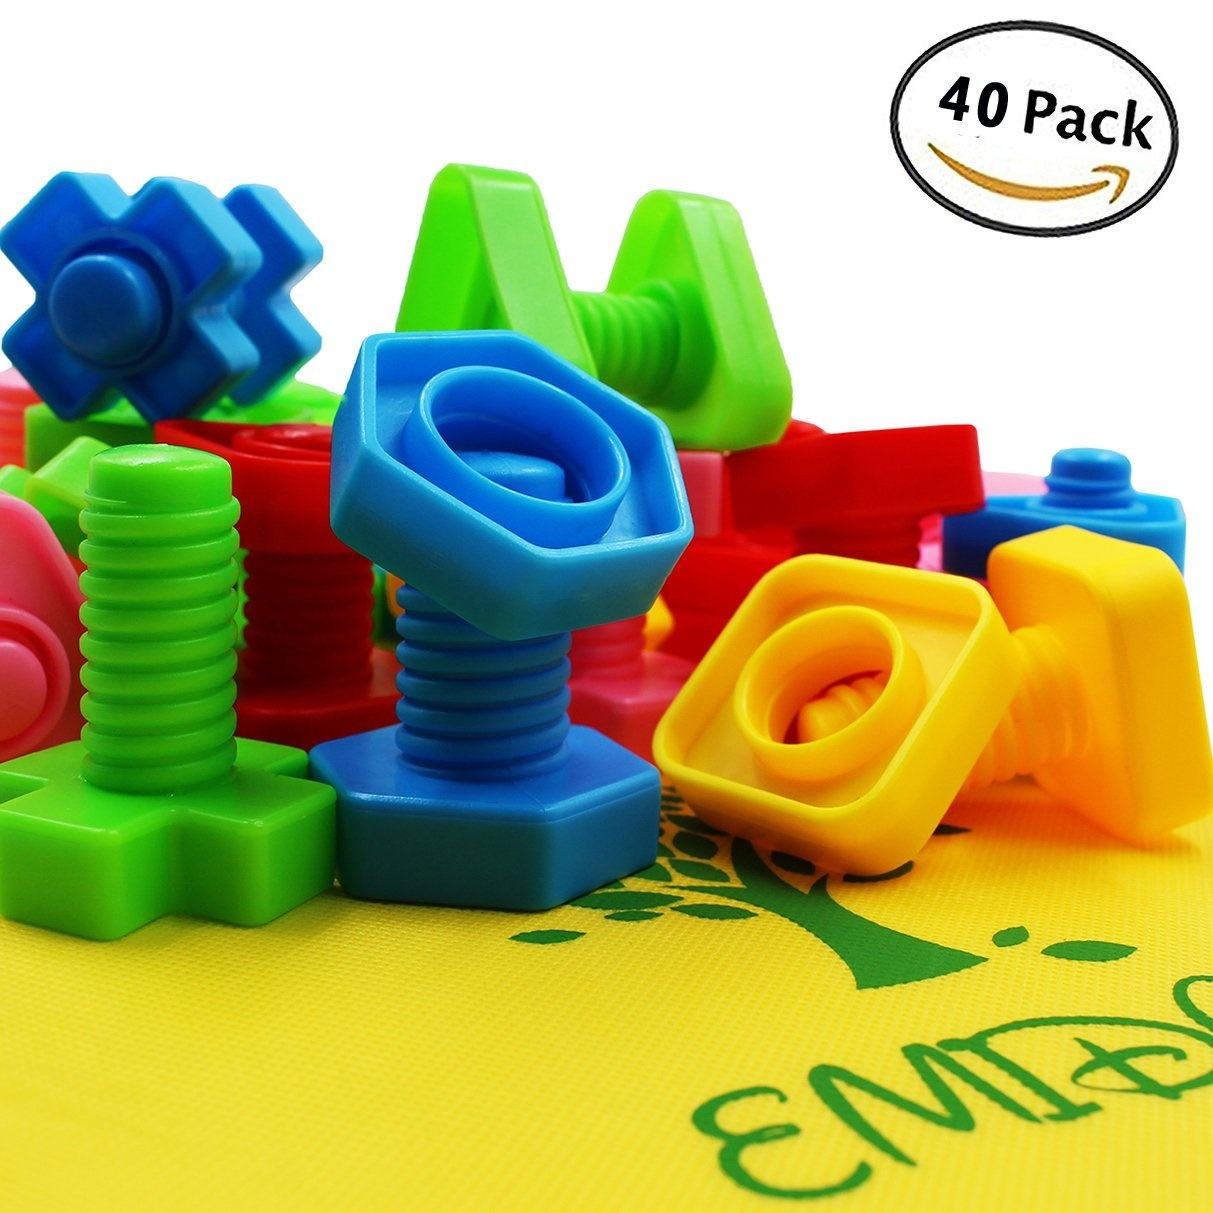 EMIDO 40 Pieces Jumbo Nuts Bolts Toy, STEM Toy, Kids Educational  Enlightenment Toys, Occupational Therapy Autism,Safe Material for Kids -  Matching